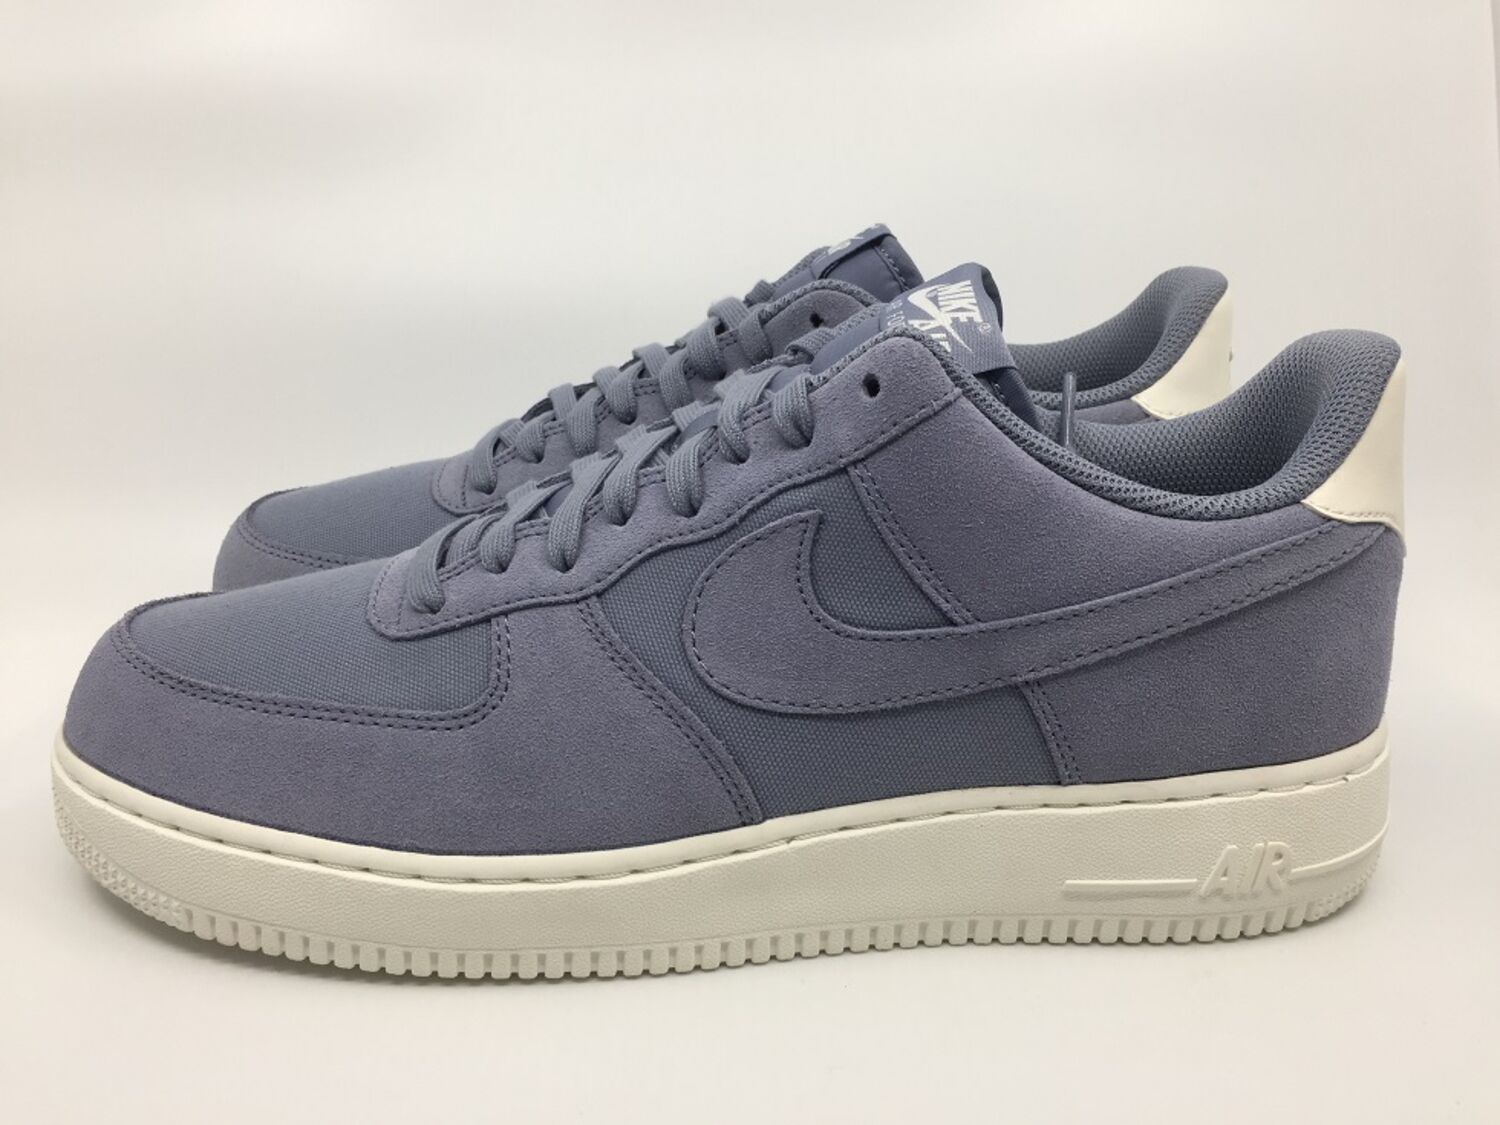 Nike Air Force 1 ´07 Suede AO3835 400 Gr. 45,5 Herren